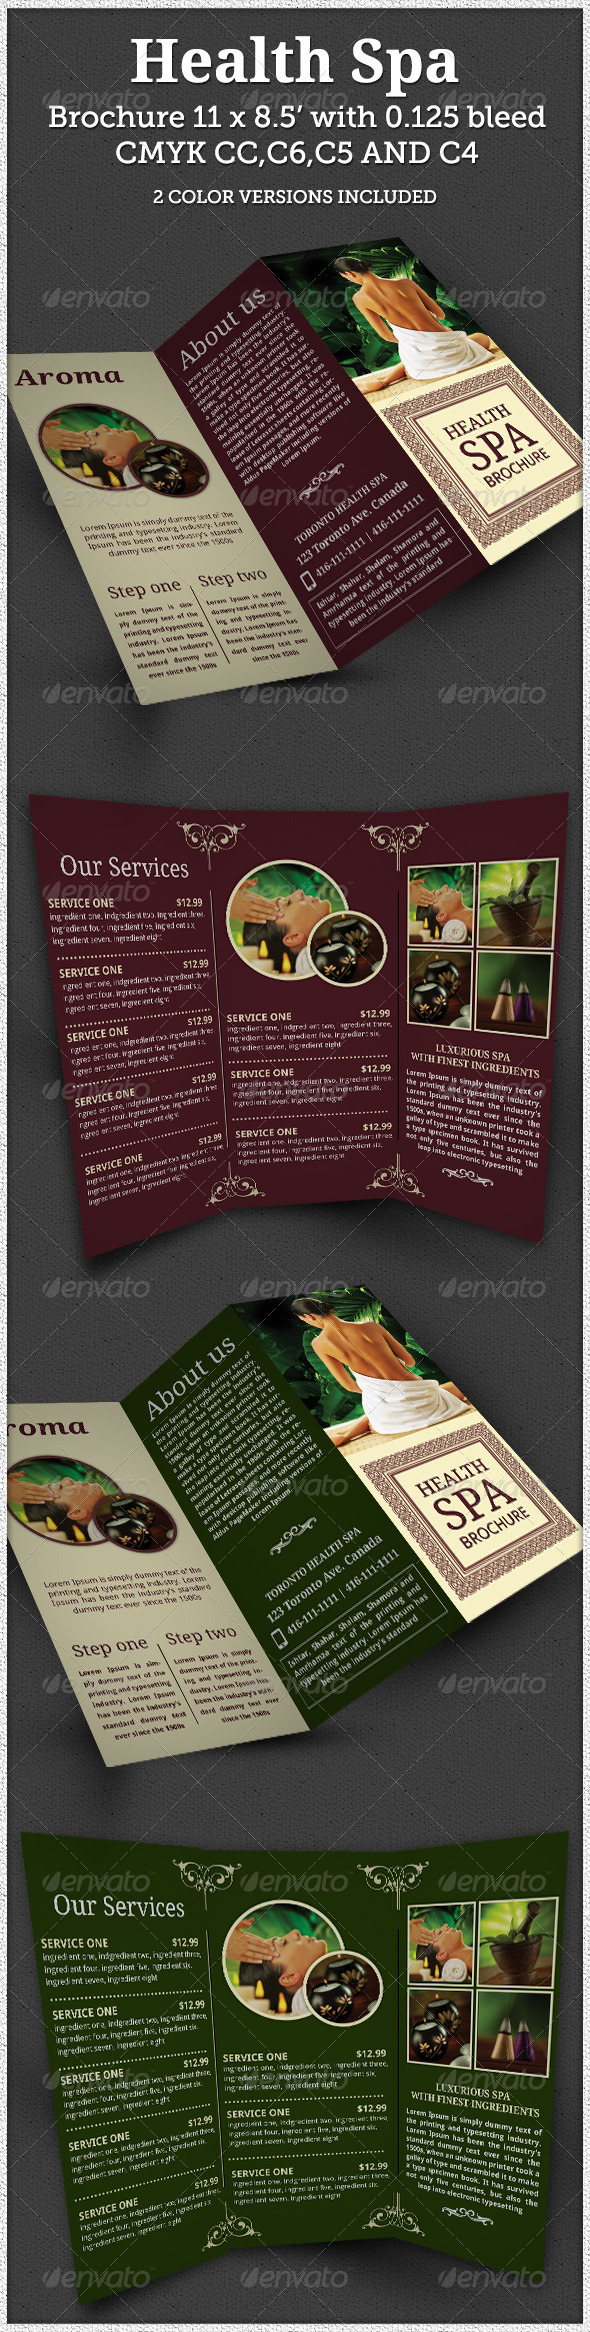 Print templates health spa brochure indesign template for 8 5 x 11 brochure template indesign